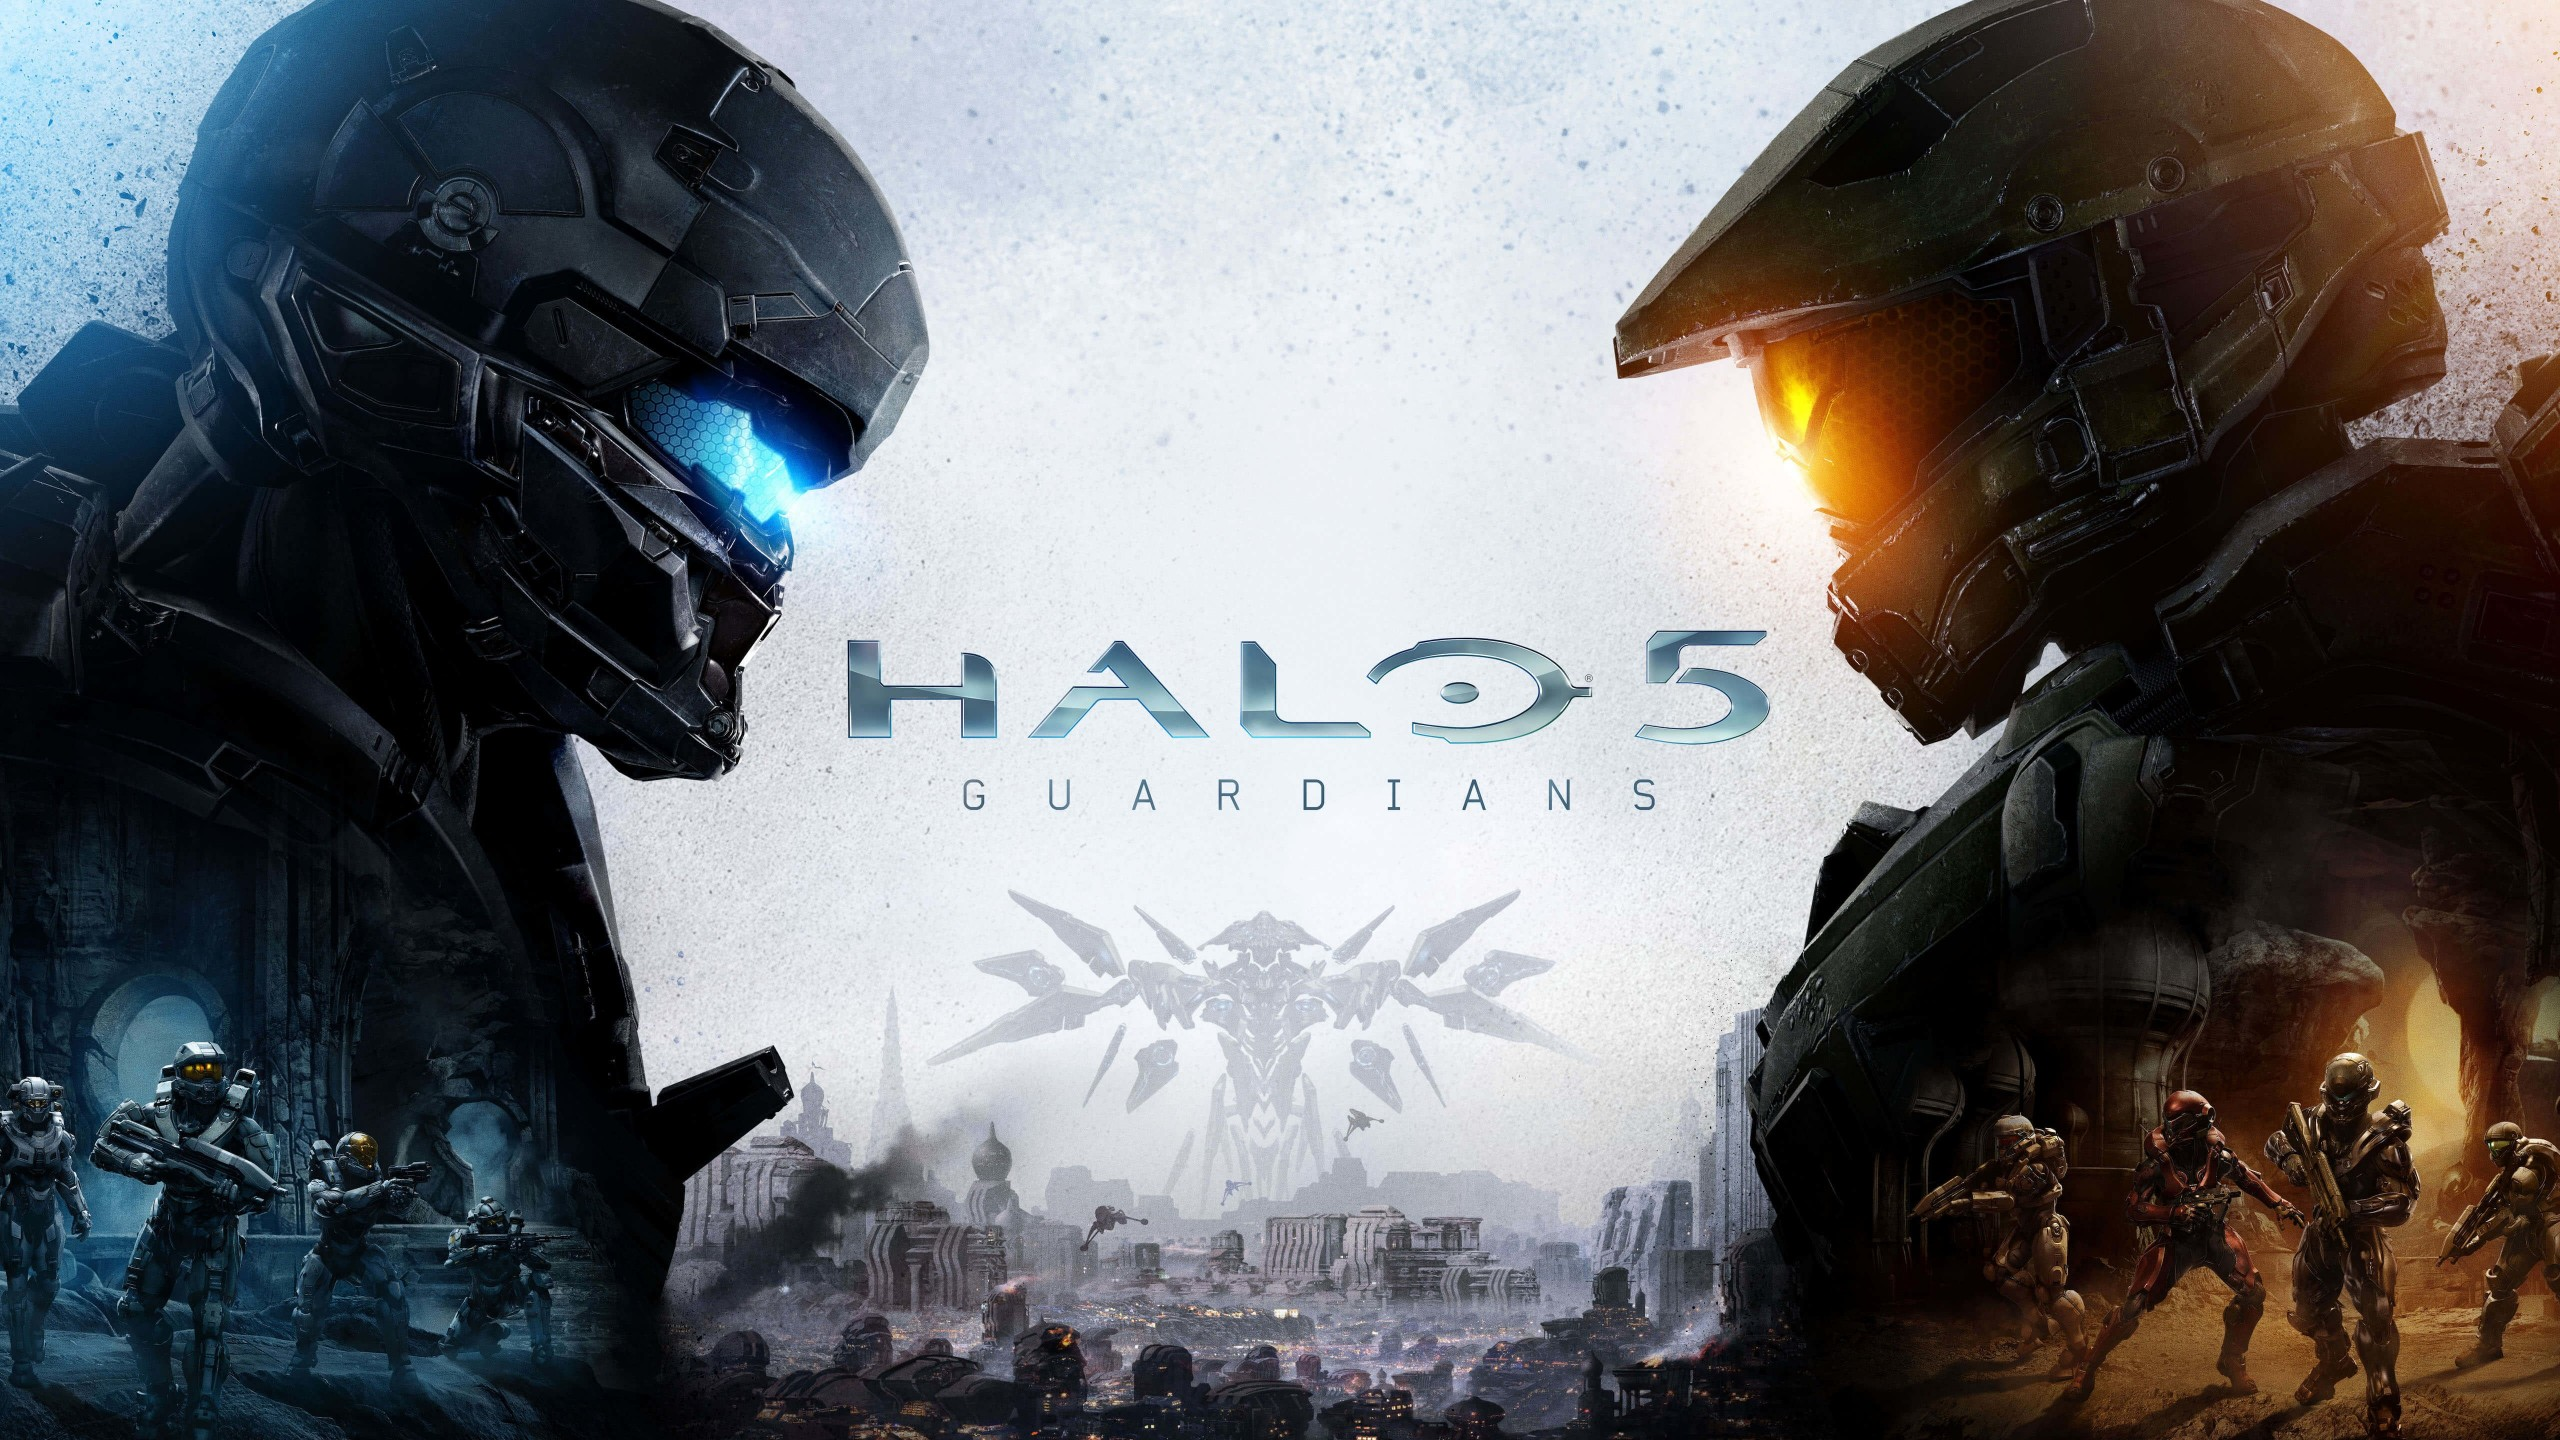 Halo 5 Guardians Wallpaper: Download Halo 5: Guardians HD Wallpaper For 2560 X 1440